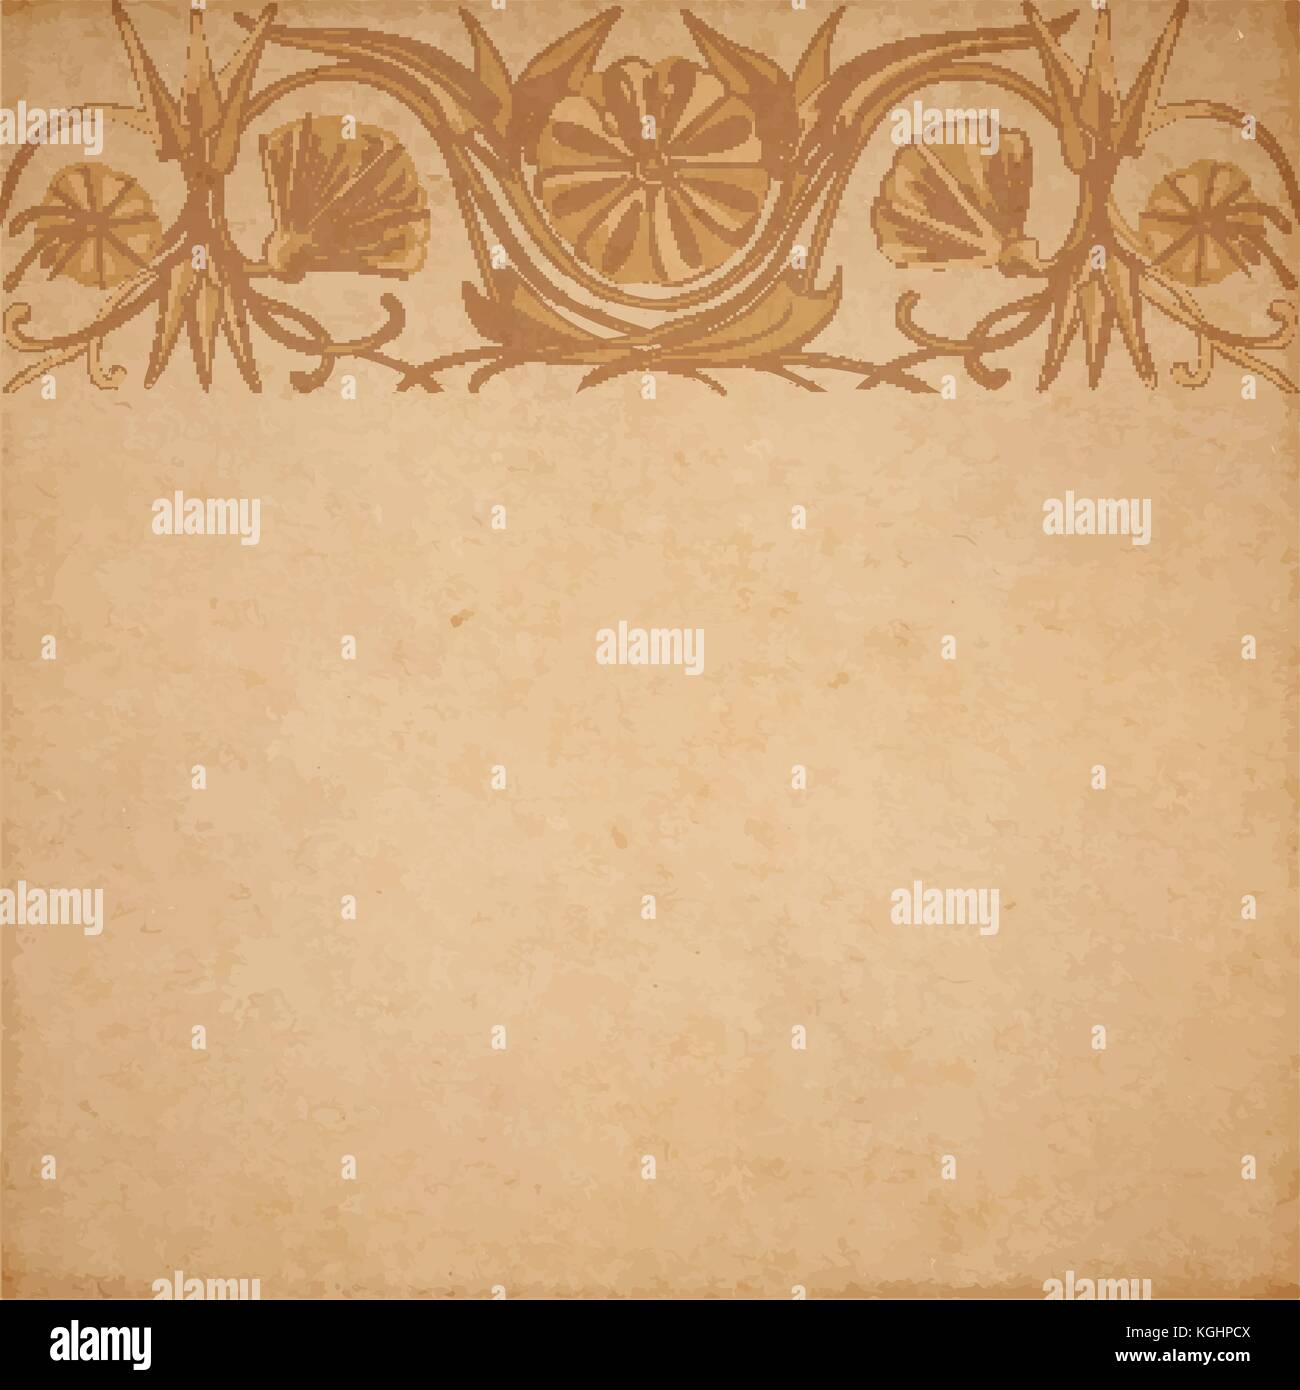 Vector Illustration Of Scrapbooking Parchment Paper With Flower